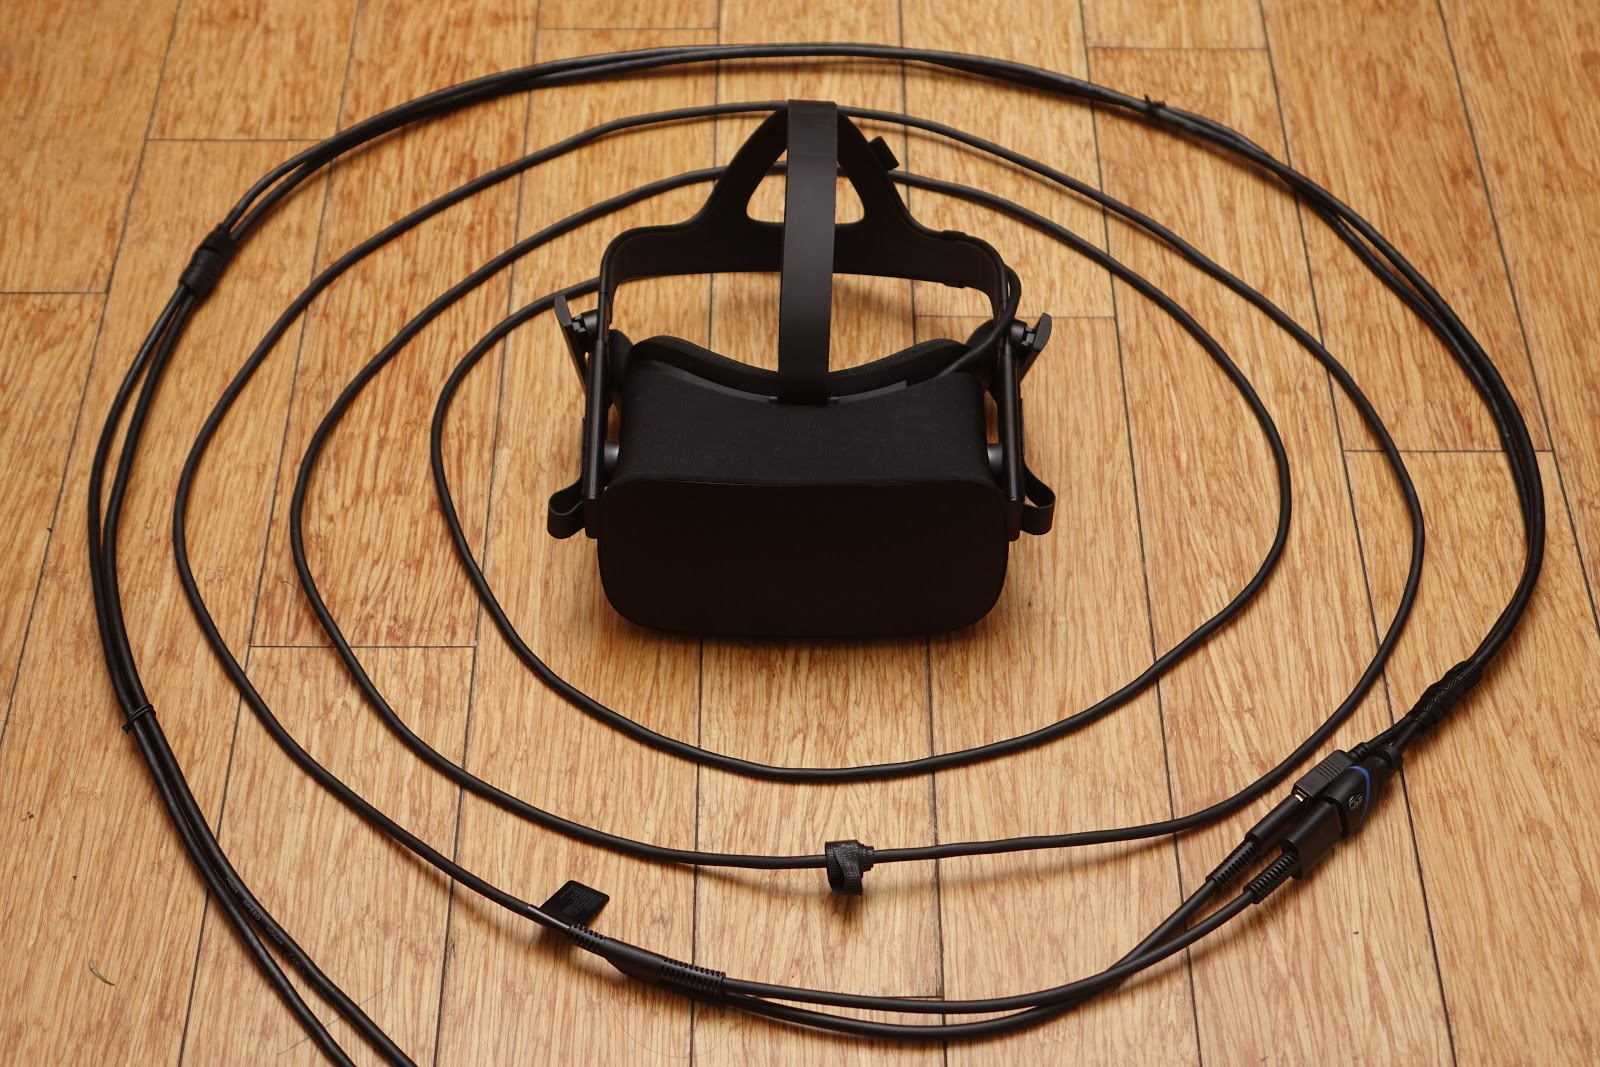 Oculus Rift Headset Cable Extension For Under 20 360 Rumors